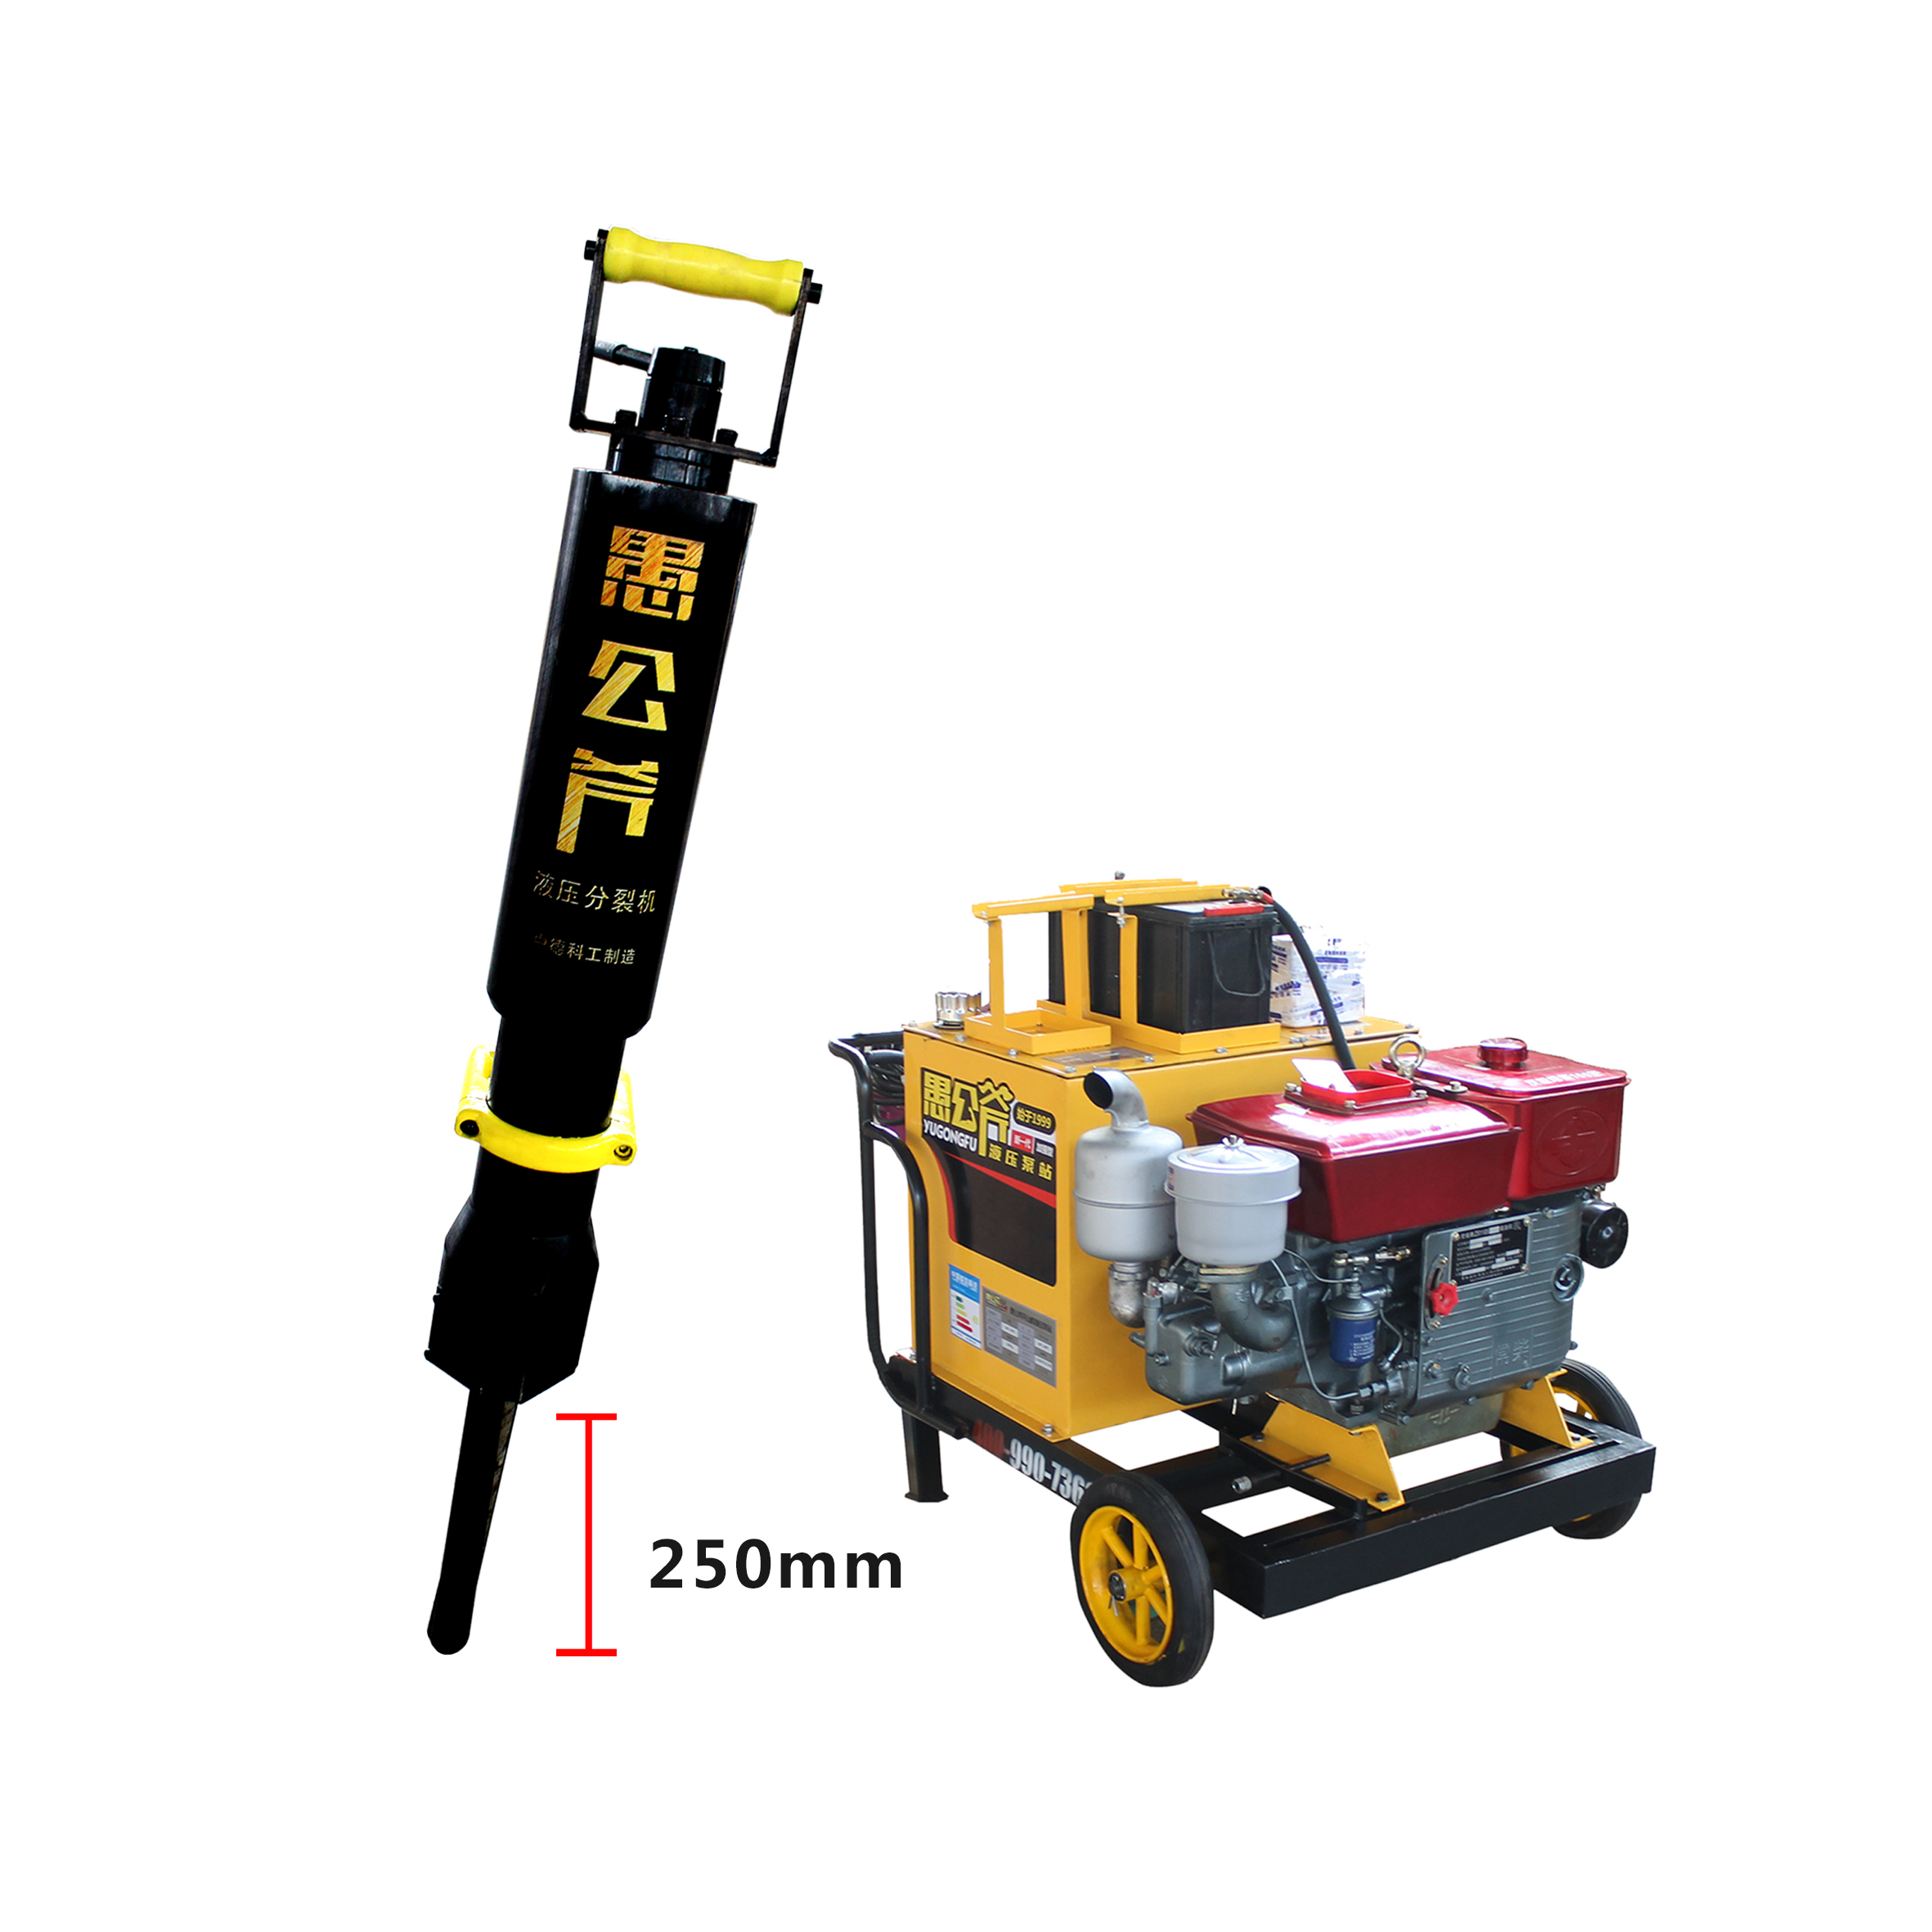 Portable hydraulic darda <strong>c12</strong> rock splitter for sale